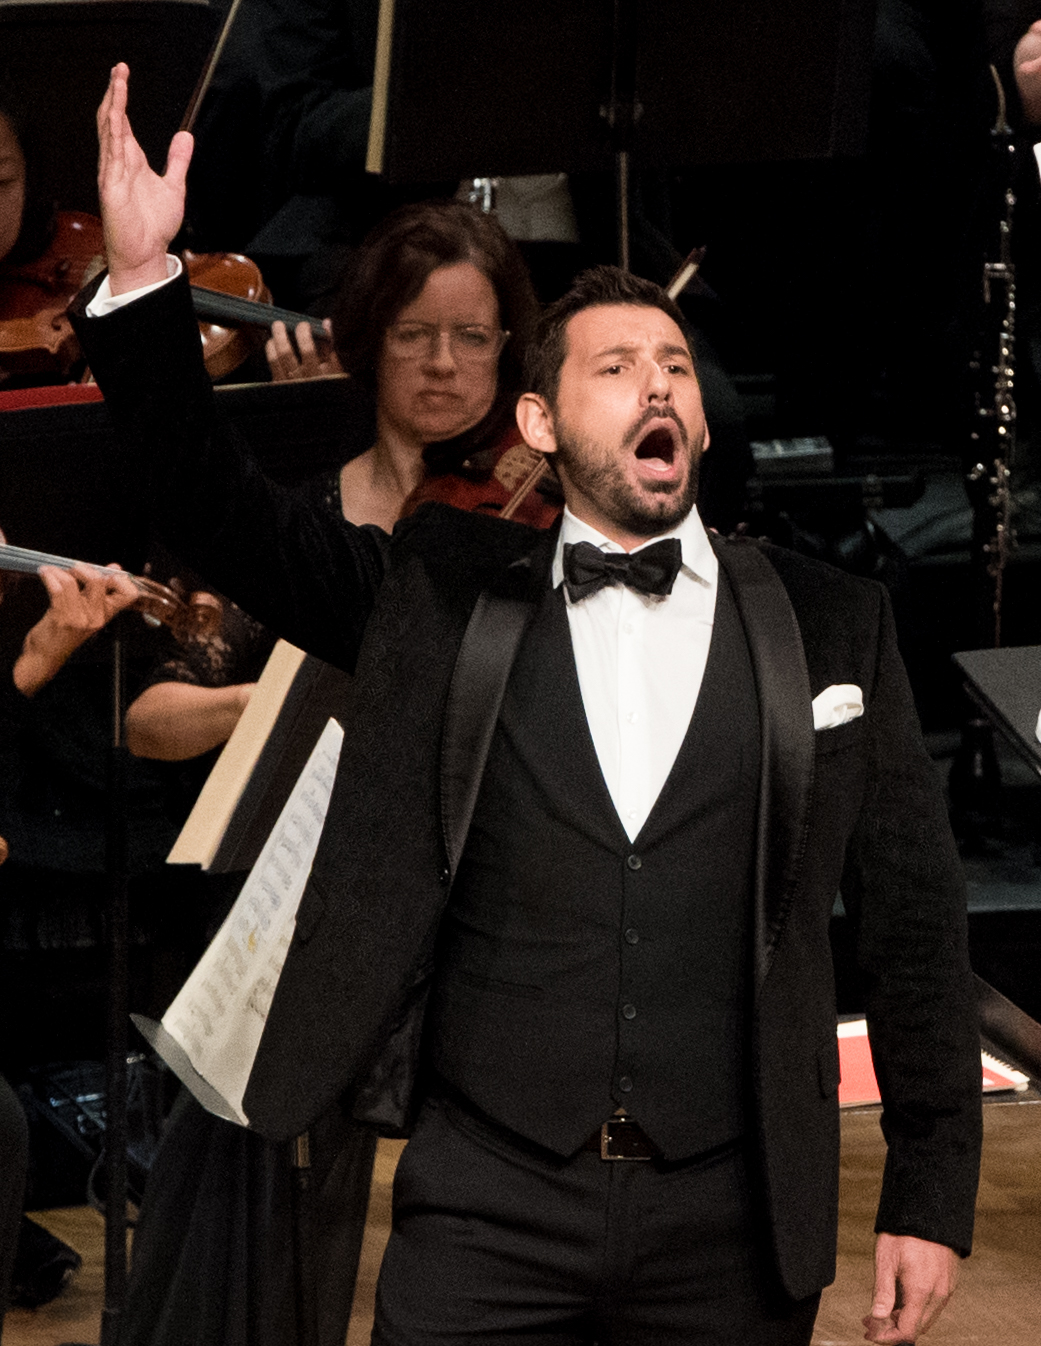 IN REVIEW: Tenor MICHELE ANGELINI singing 'Ah! mes amis, quel jour de fête' from Gaetano Donizetti's LA FILLE DU RÉGIMENT in Washington Concert Opera's 30th Anniversary Concert, 18 September 2016 [Photo by Don Lassell, © by Washington Concert Opera]